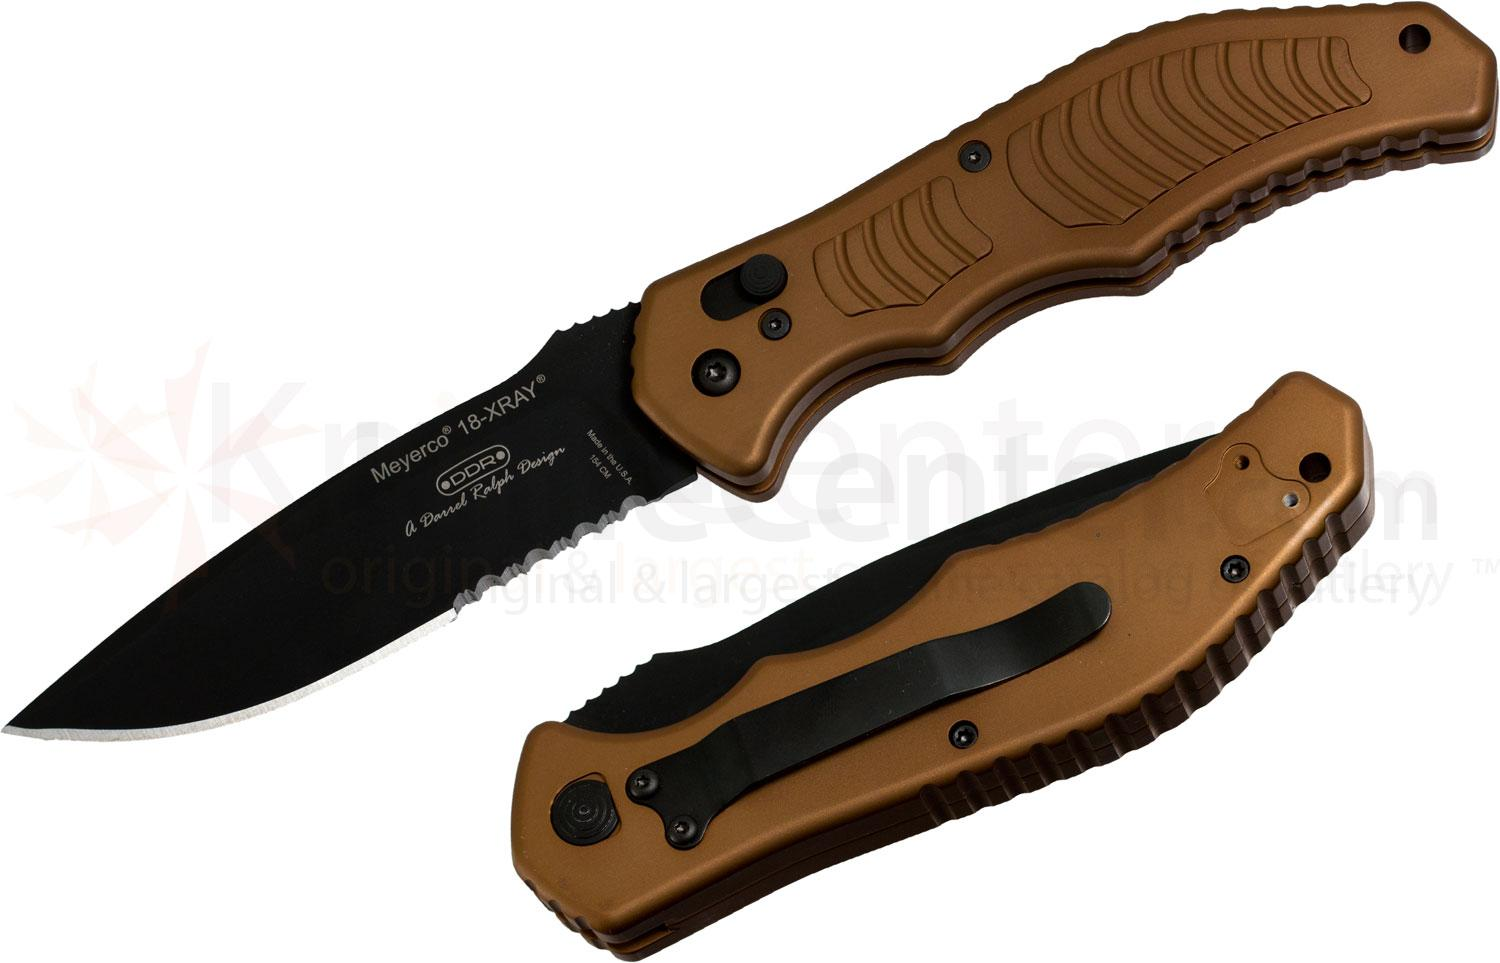 Meyerco Darrel Ralph Military X-Ray AUTO 3-13/16 inch Black Serrated Blade, Flat Dark Earth Handles